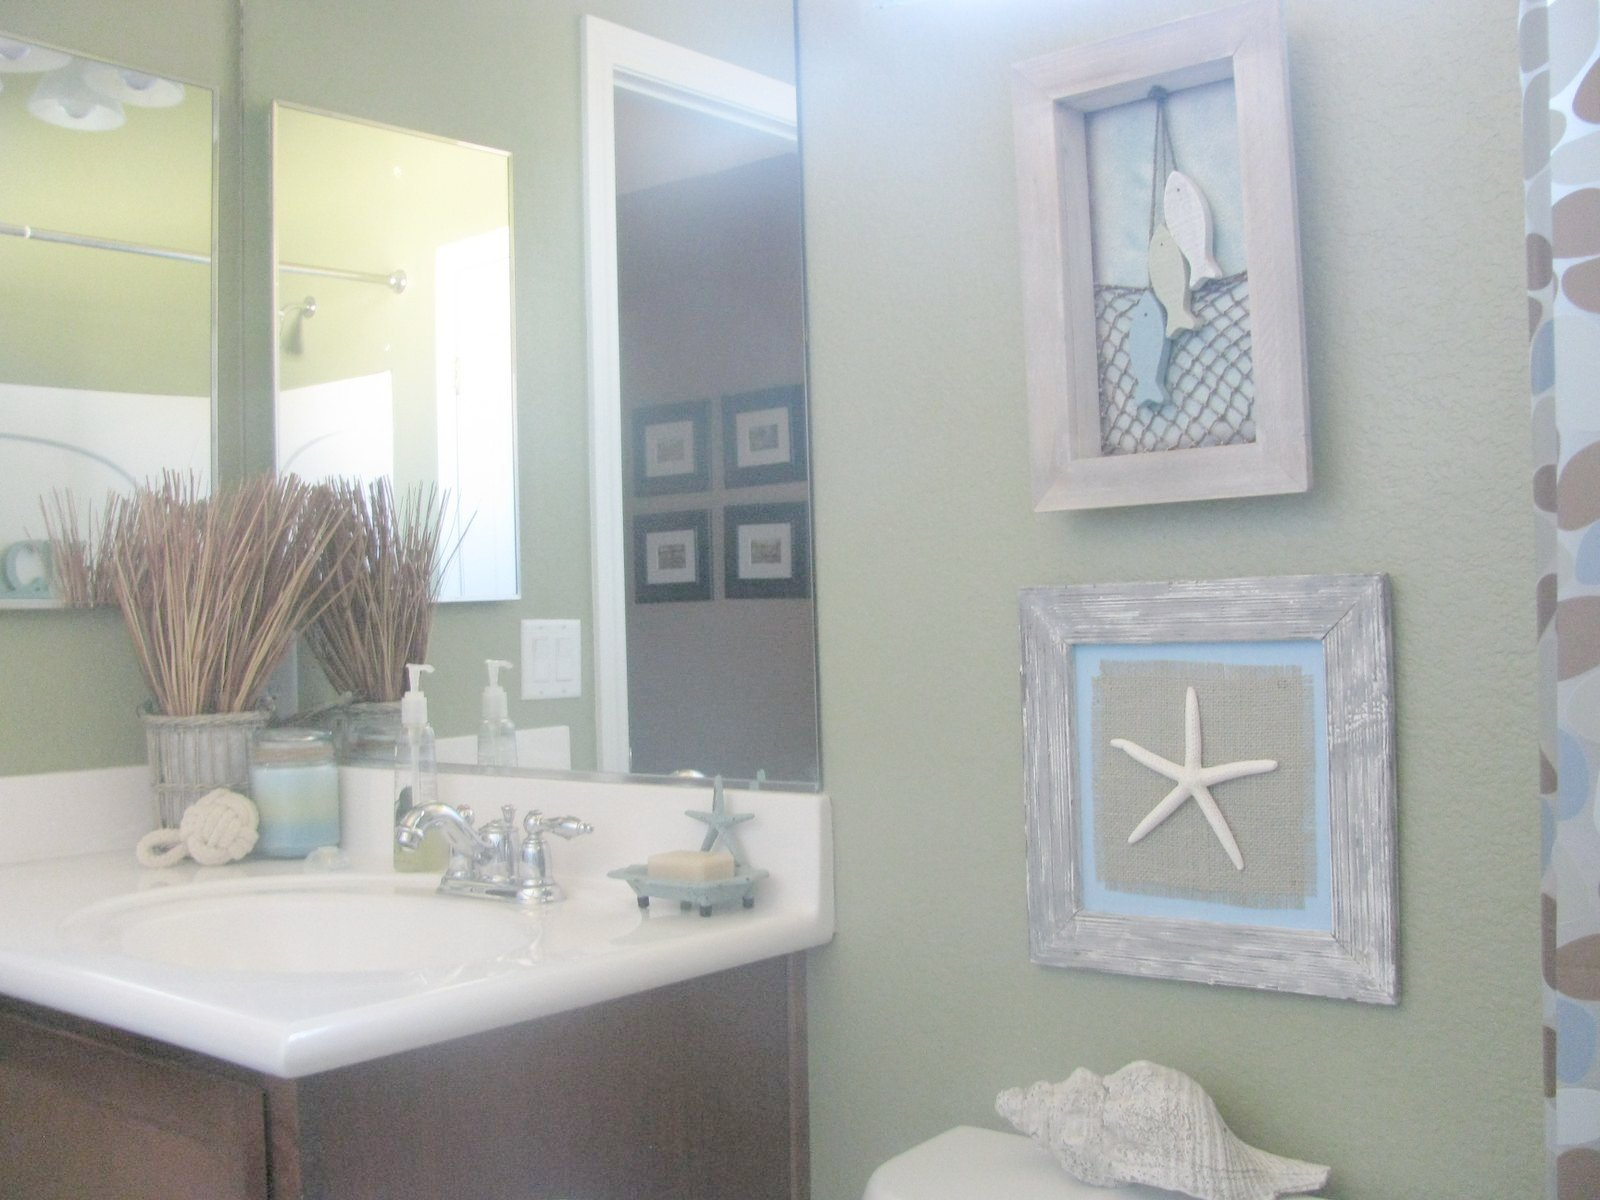 Beach Bathroom Decor Wall Color Bathroom Ideas Pinterest Love This Beachy Lantern Thingy It Looks Like It Was Made Of